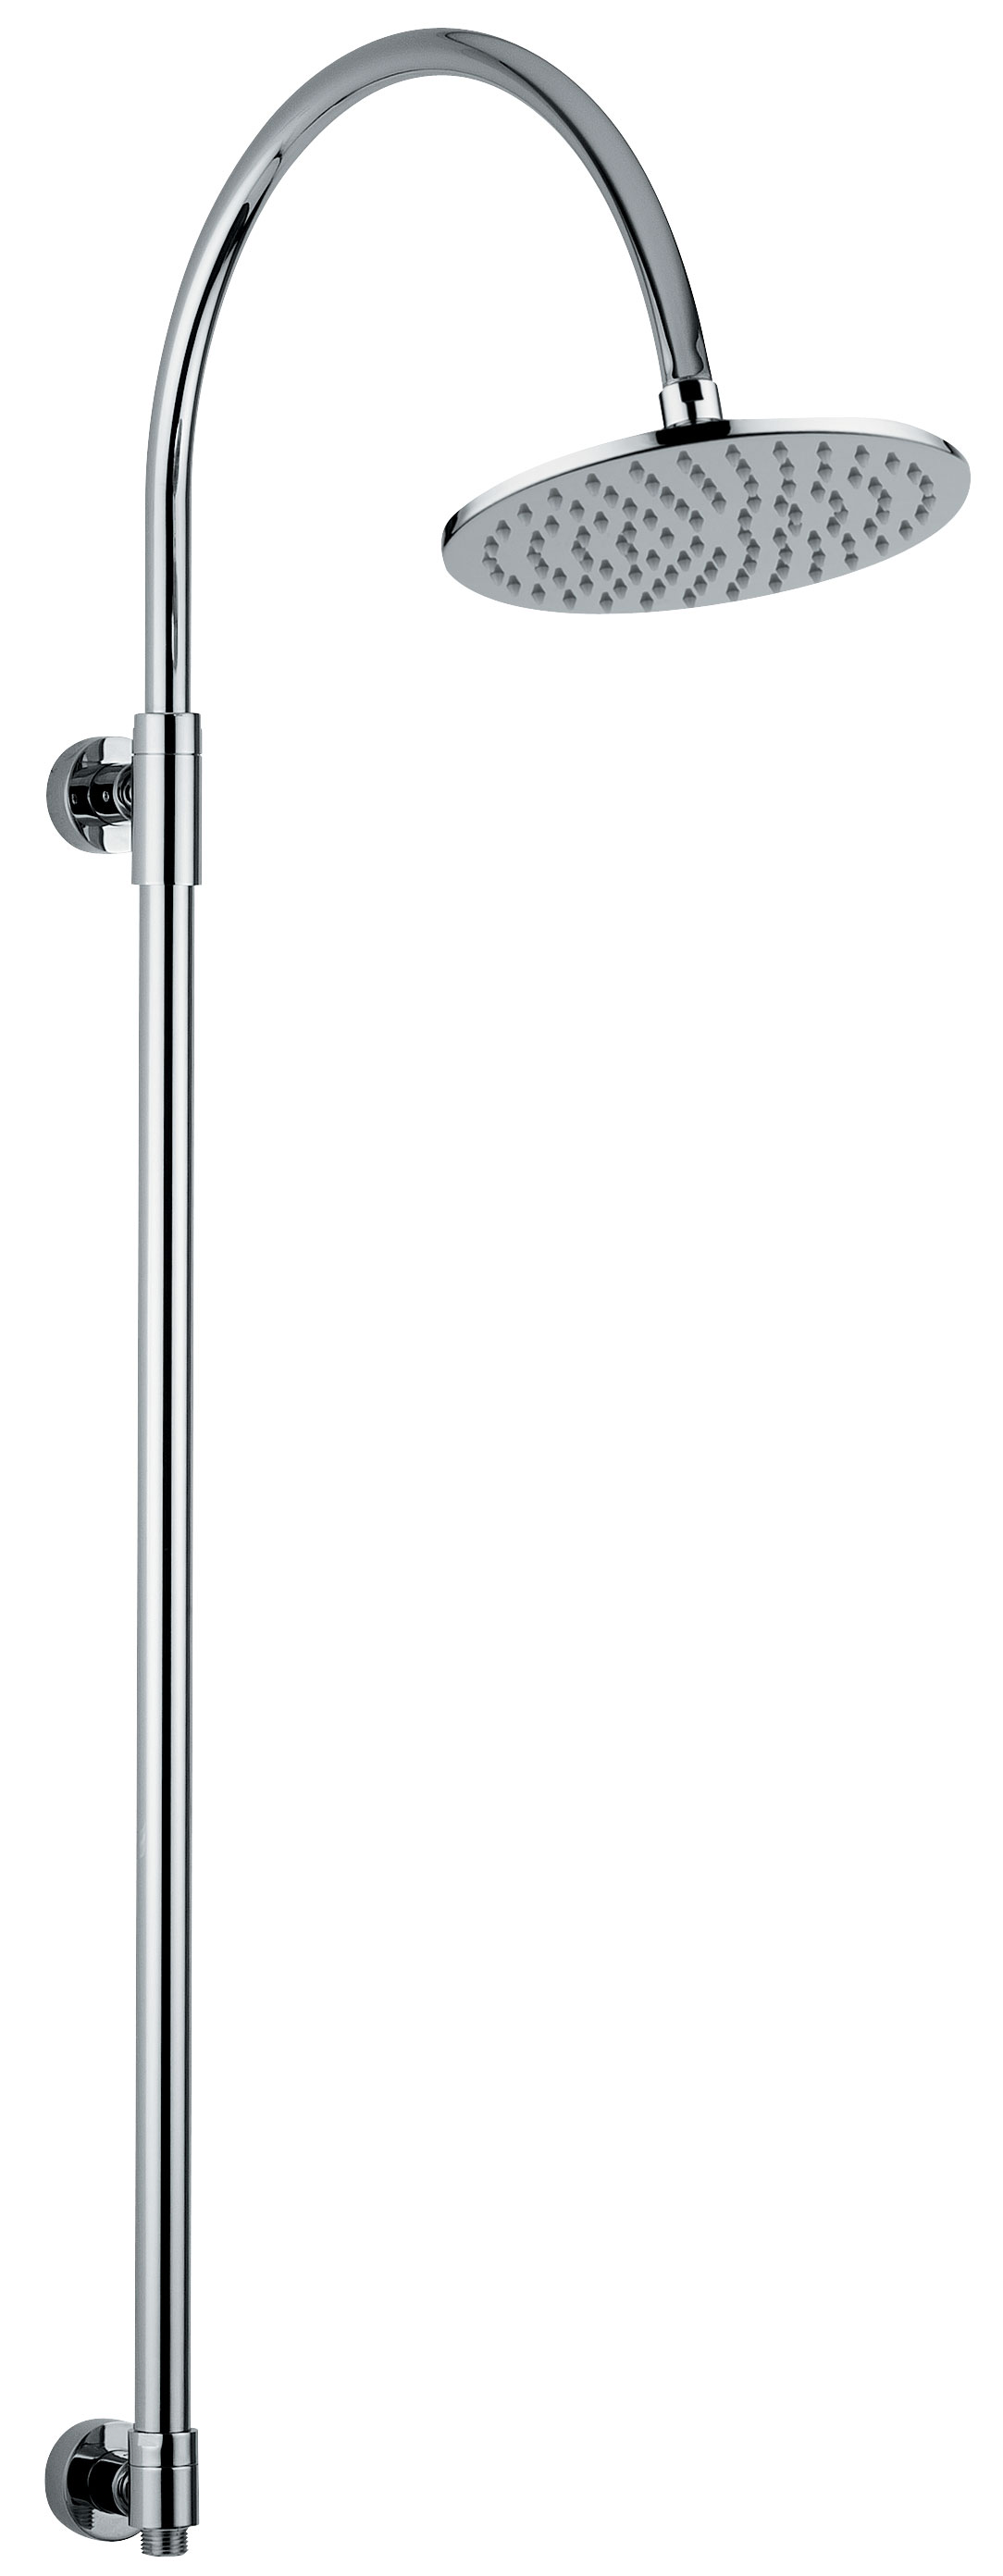 click on Circular Exposed Rigid Riser with 200mm Circular Showerhead image to enlarge